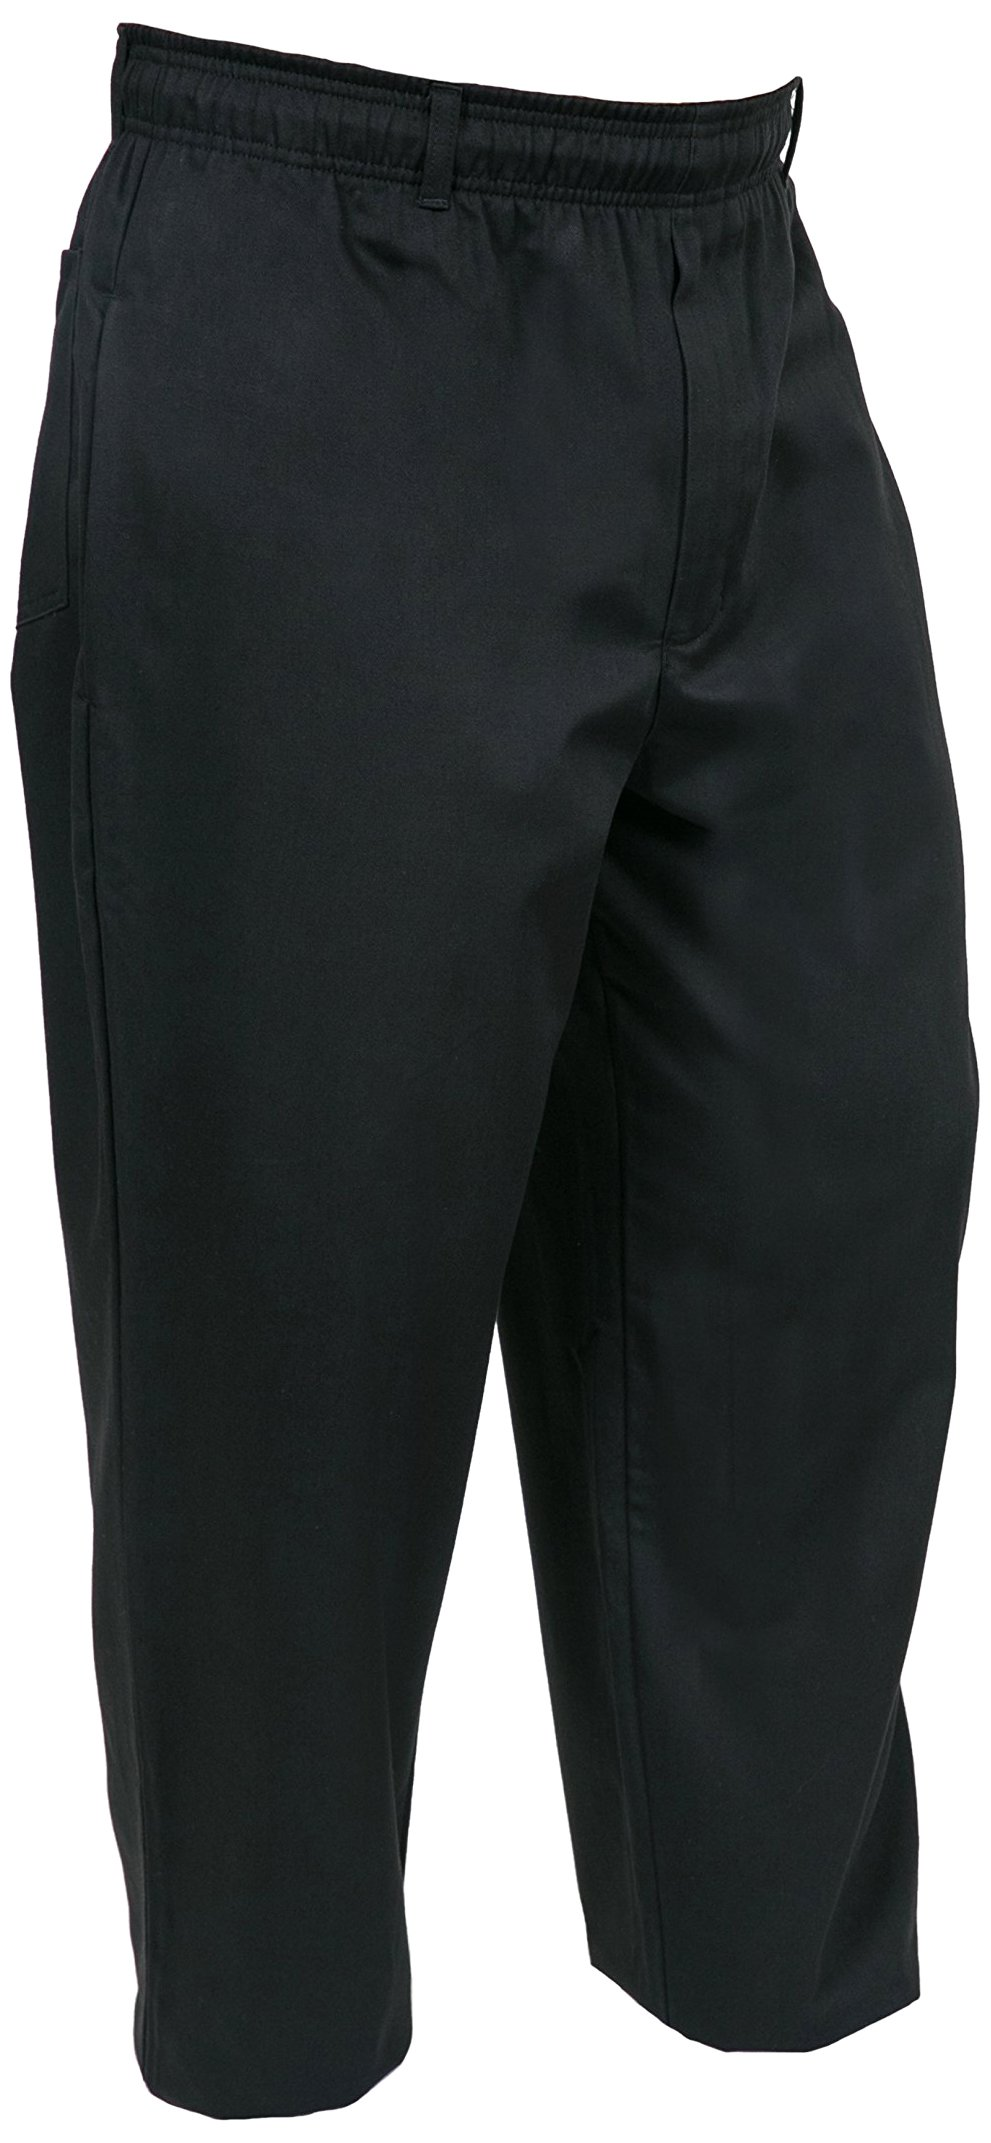 Mercer Culinary M61060BK7X Genesis Men's Chef Pant, 7X-Large, Black by Mercer Culinary